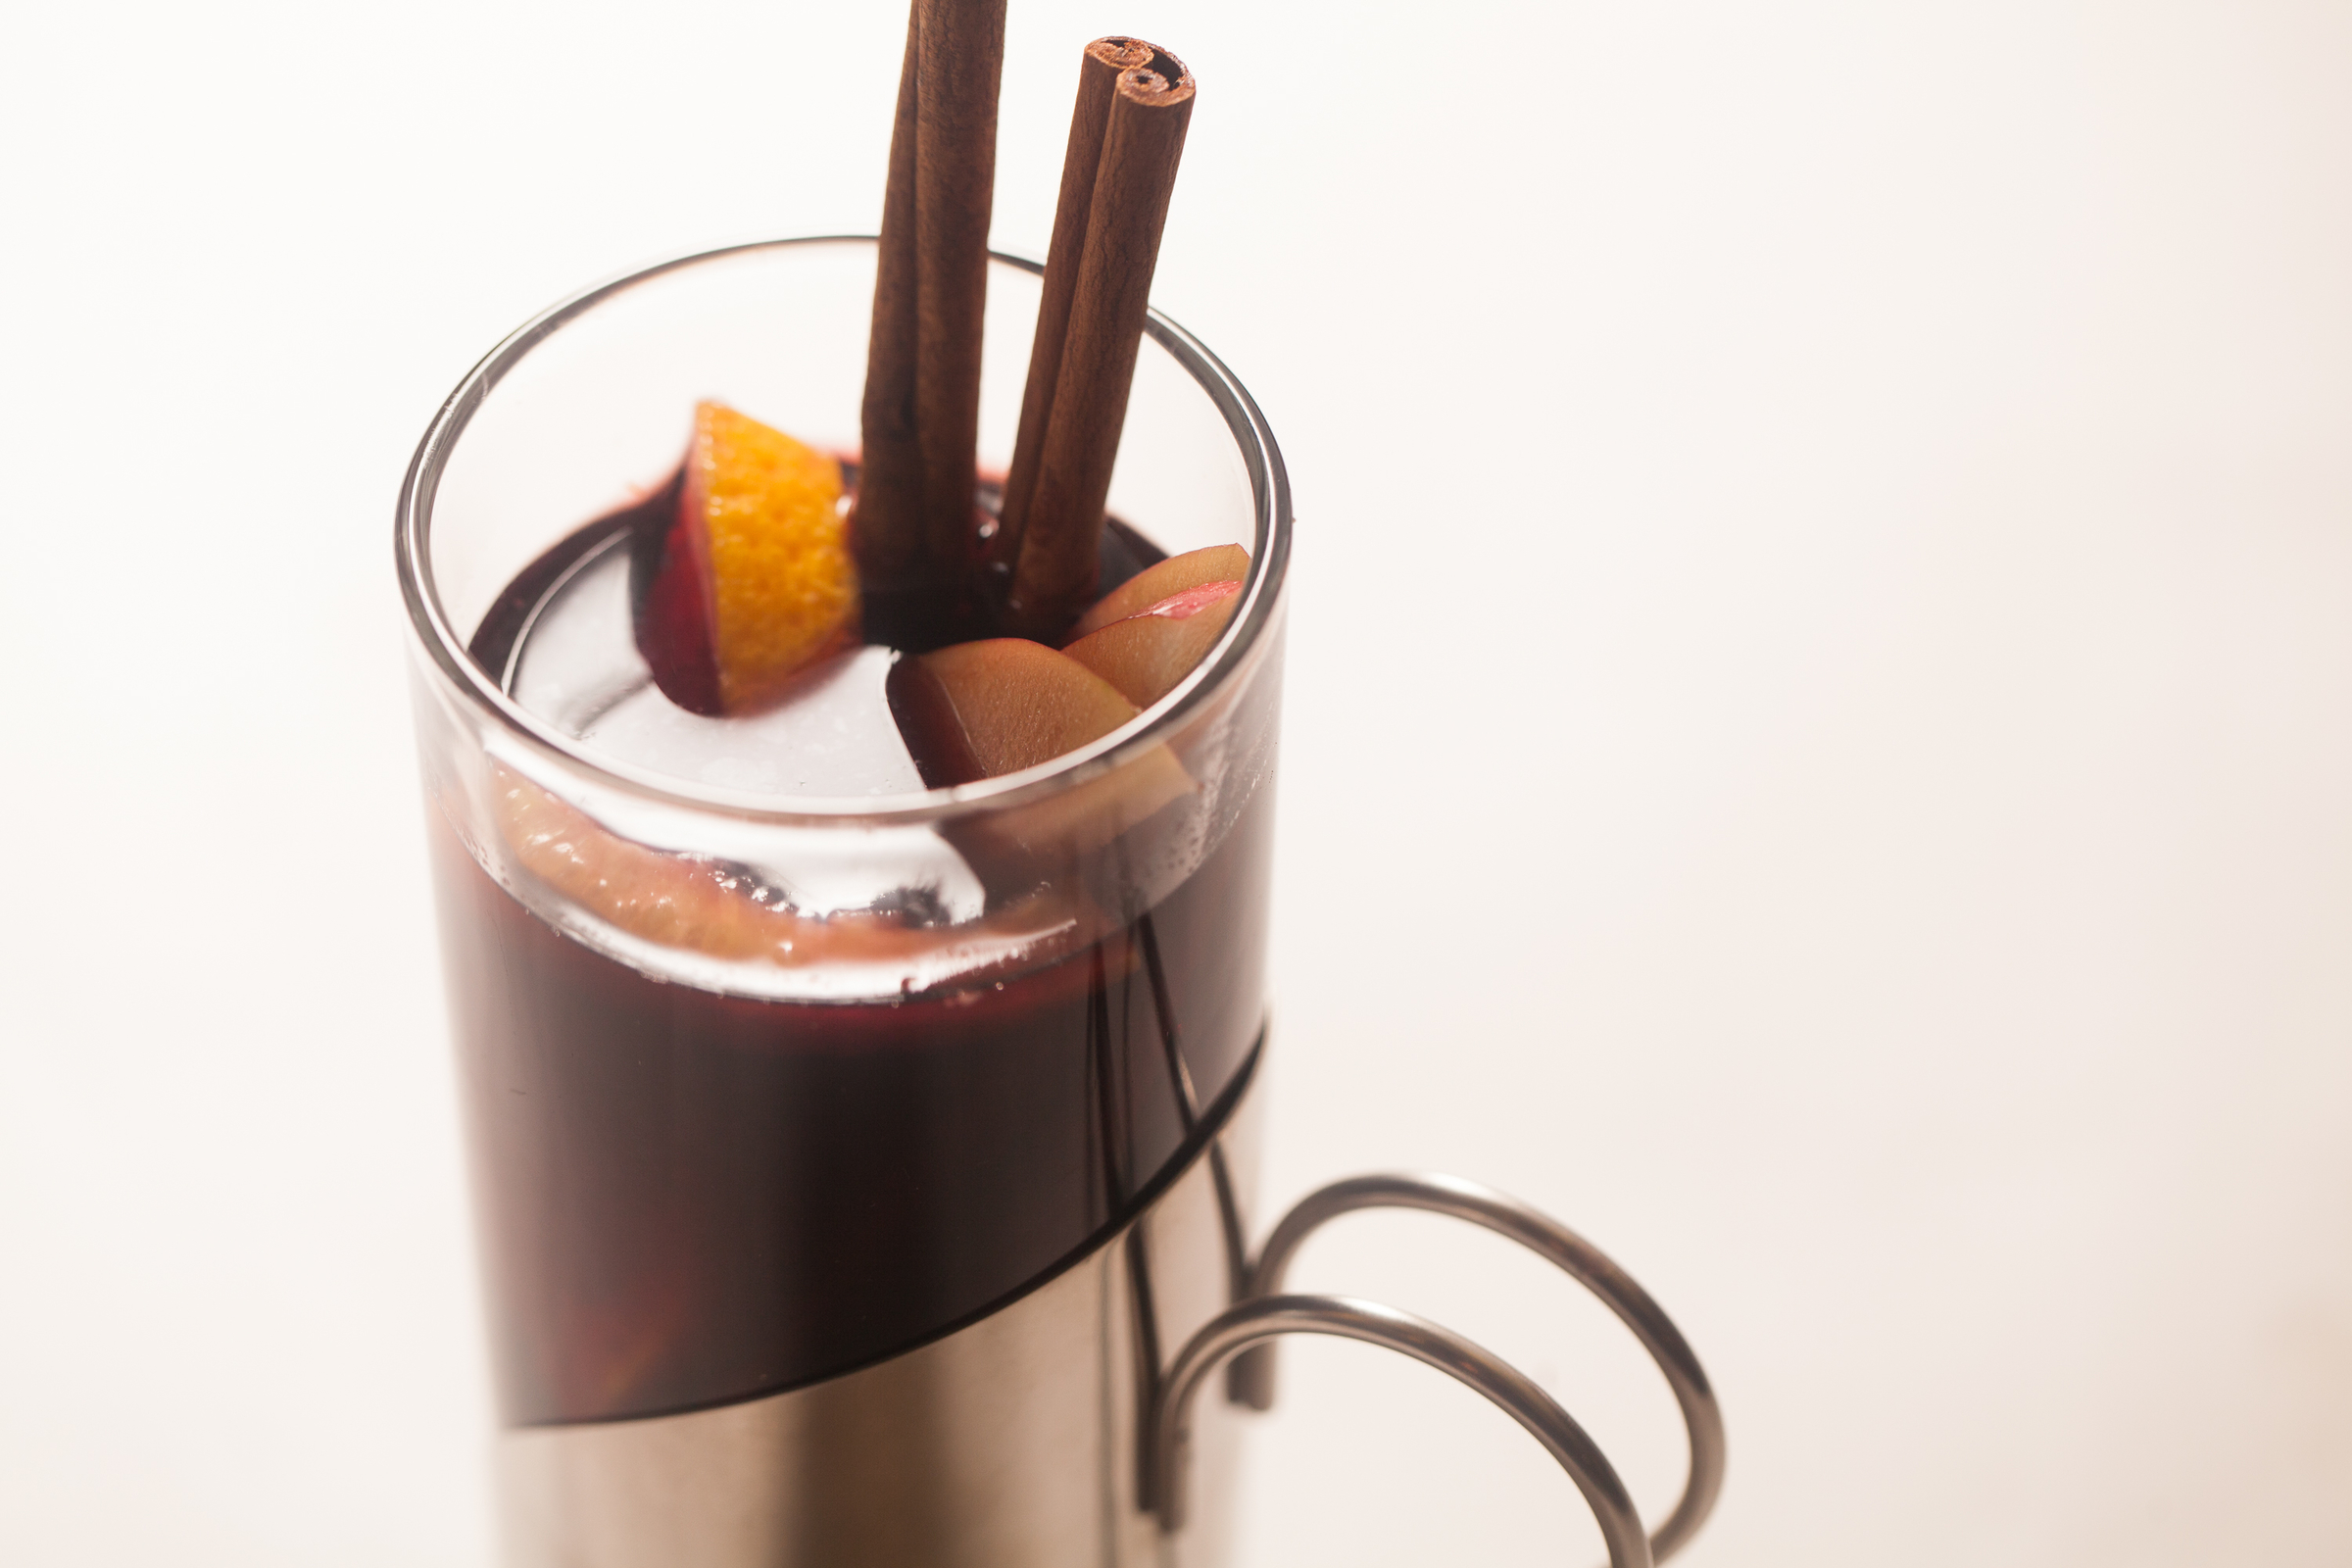 Mon Ami Gabi's Figgy Mulled Wine in a glass with cinnamon sticks sticking out